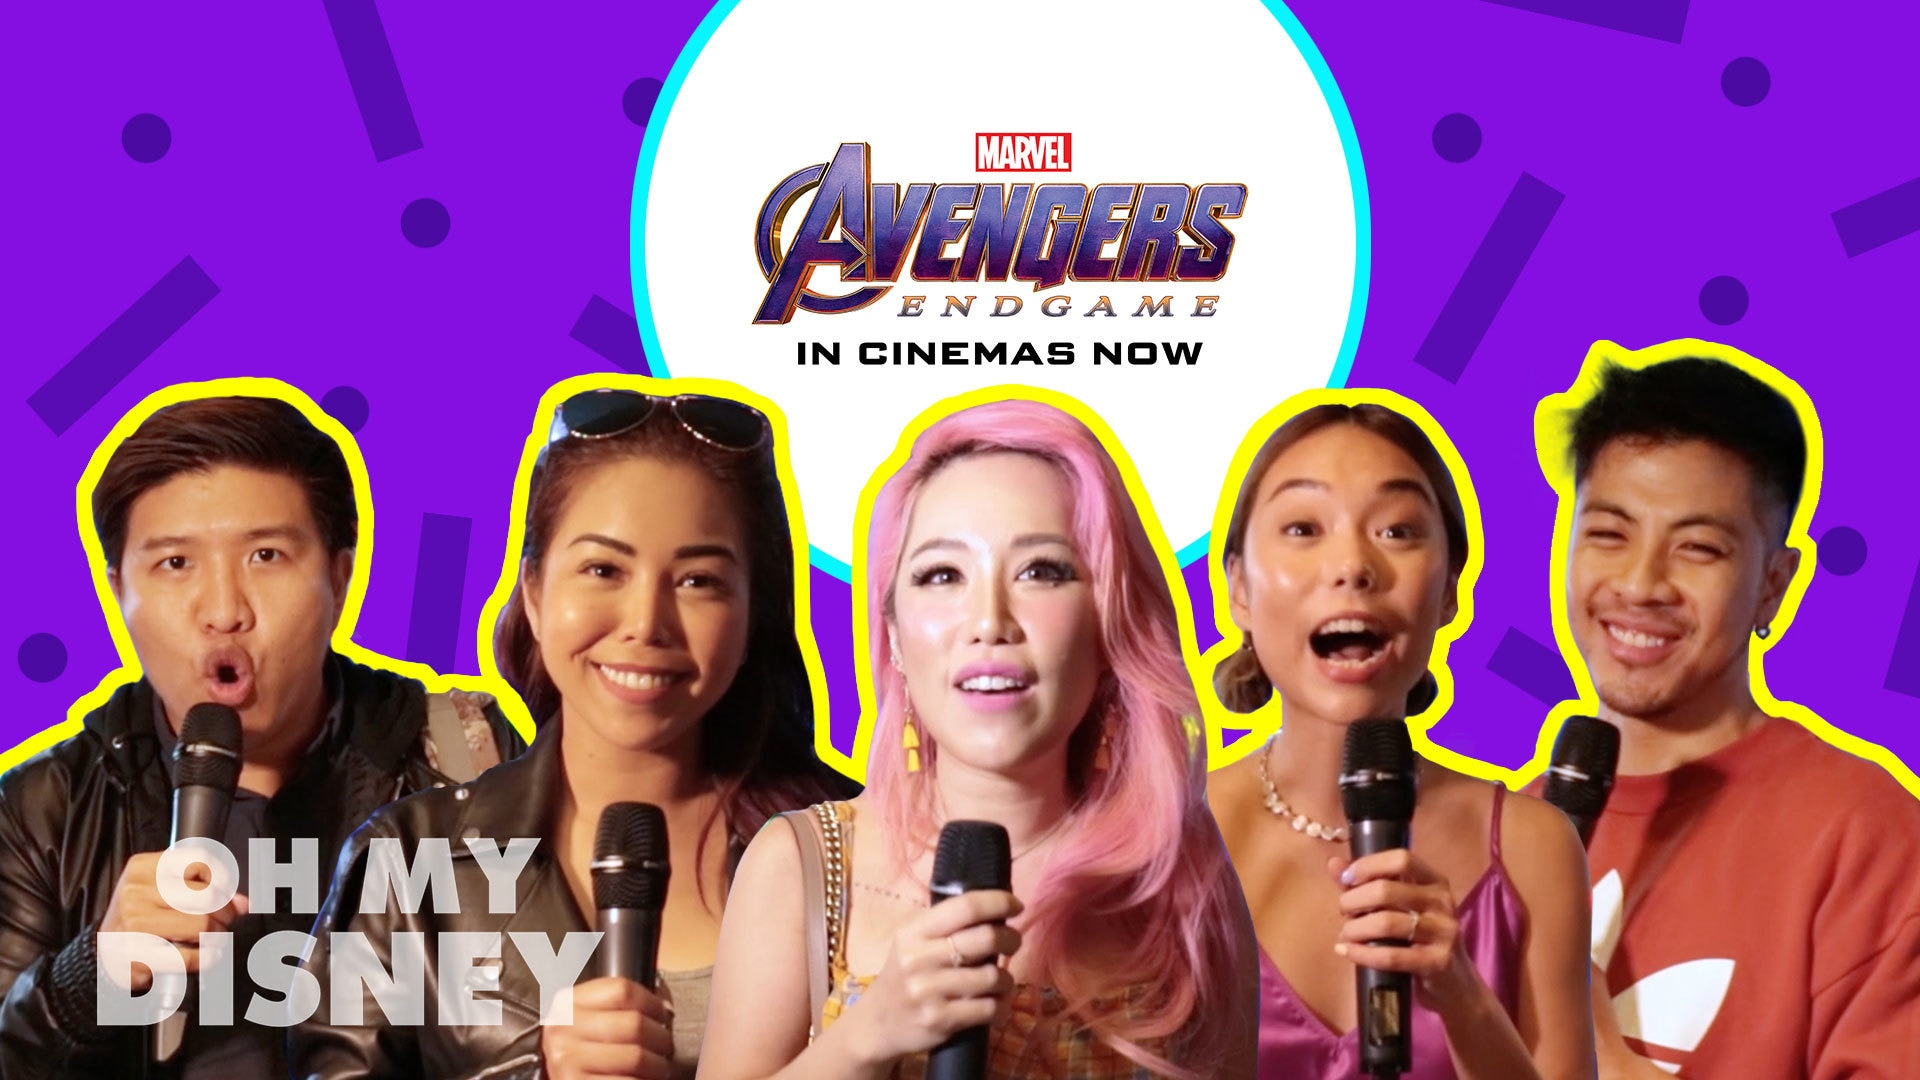 Marvel Studios' Avengers: Endgame Movie Premiere